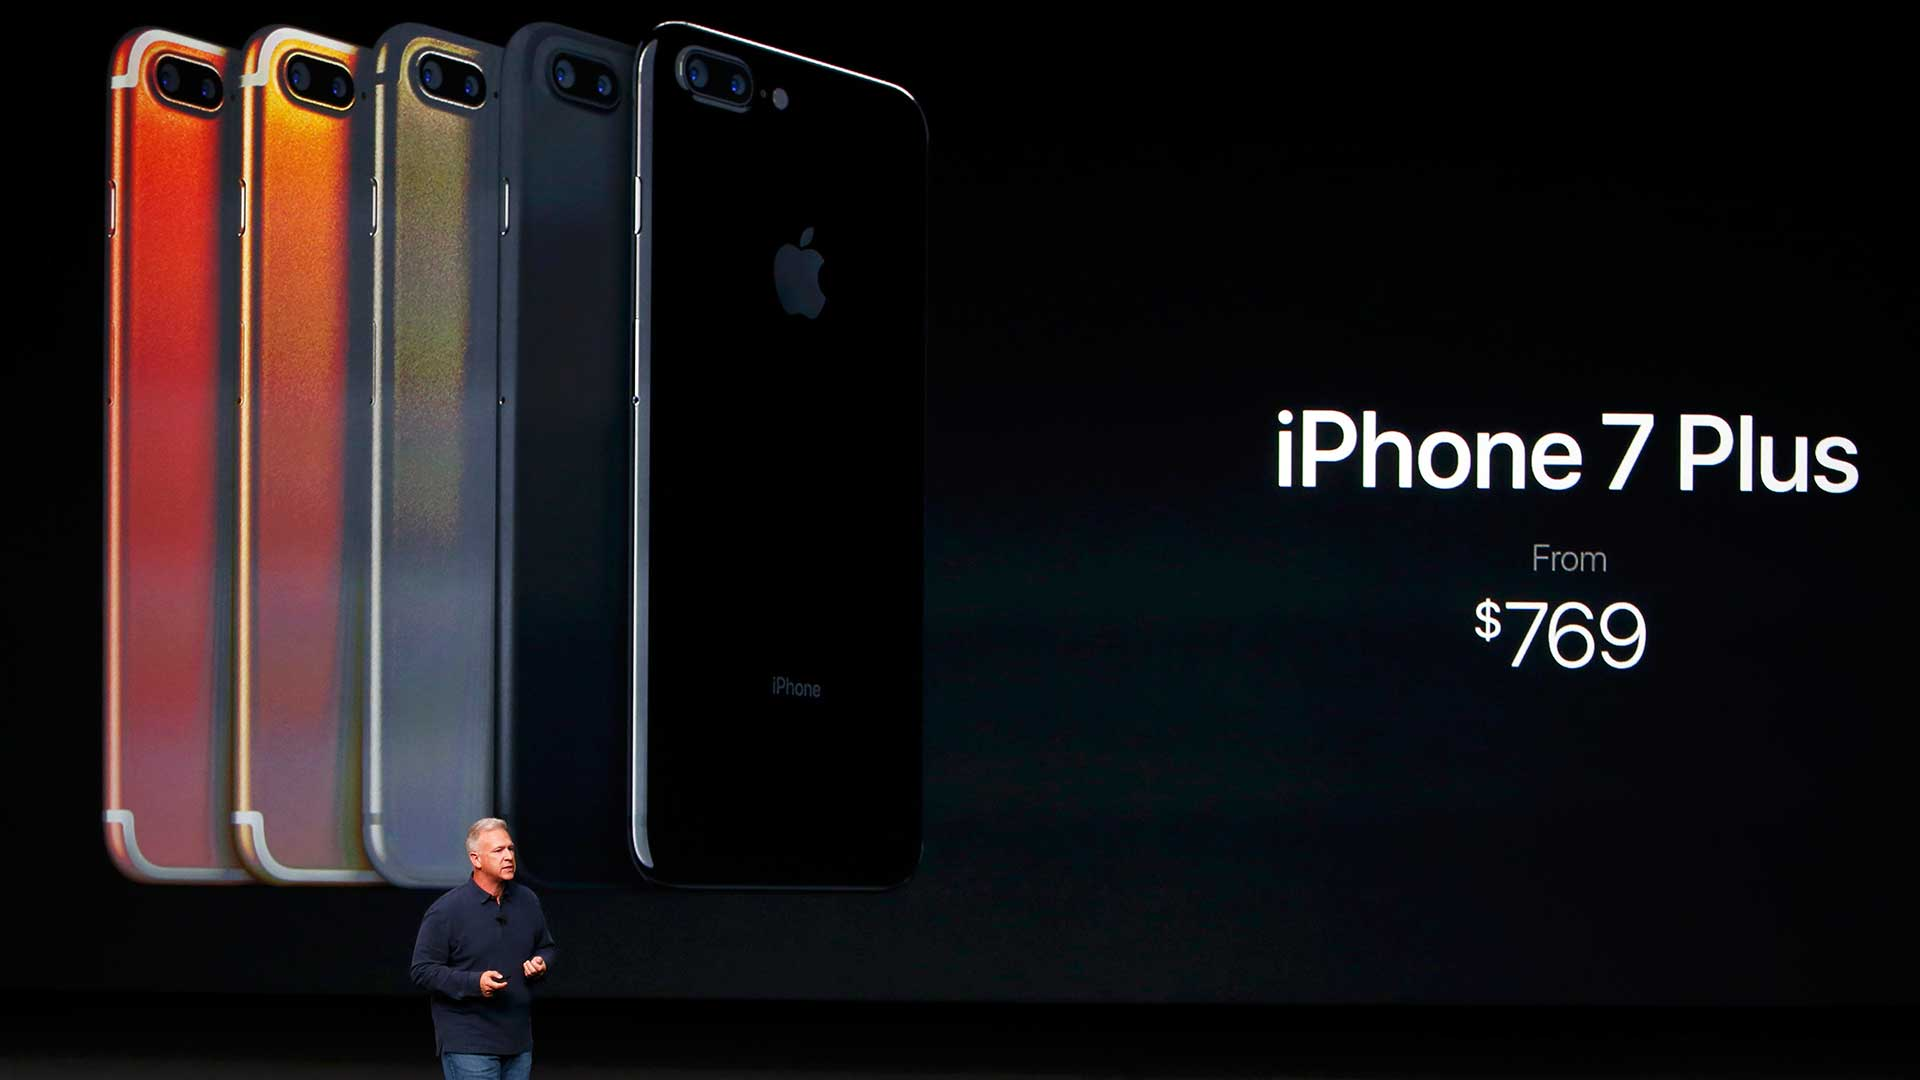 El iPhone 7 plus se venderá, liberado, a 769 dólares (Reuters).